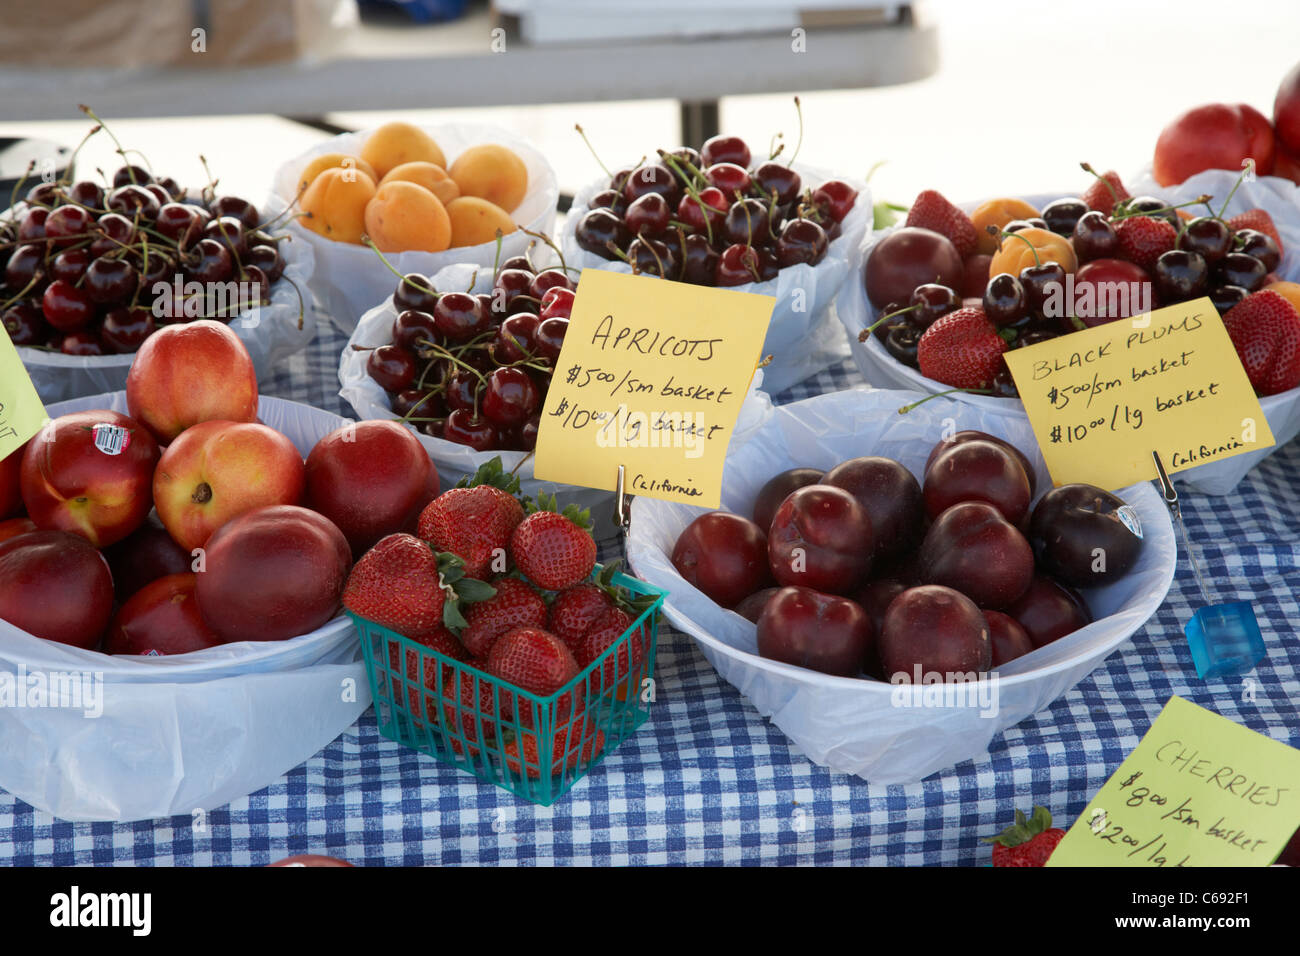 farmers market fruit stall with fresh fruits on sale Saskatoon Saskatchewan Canada Stock Photo